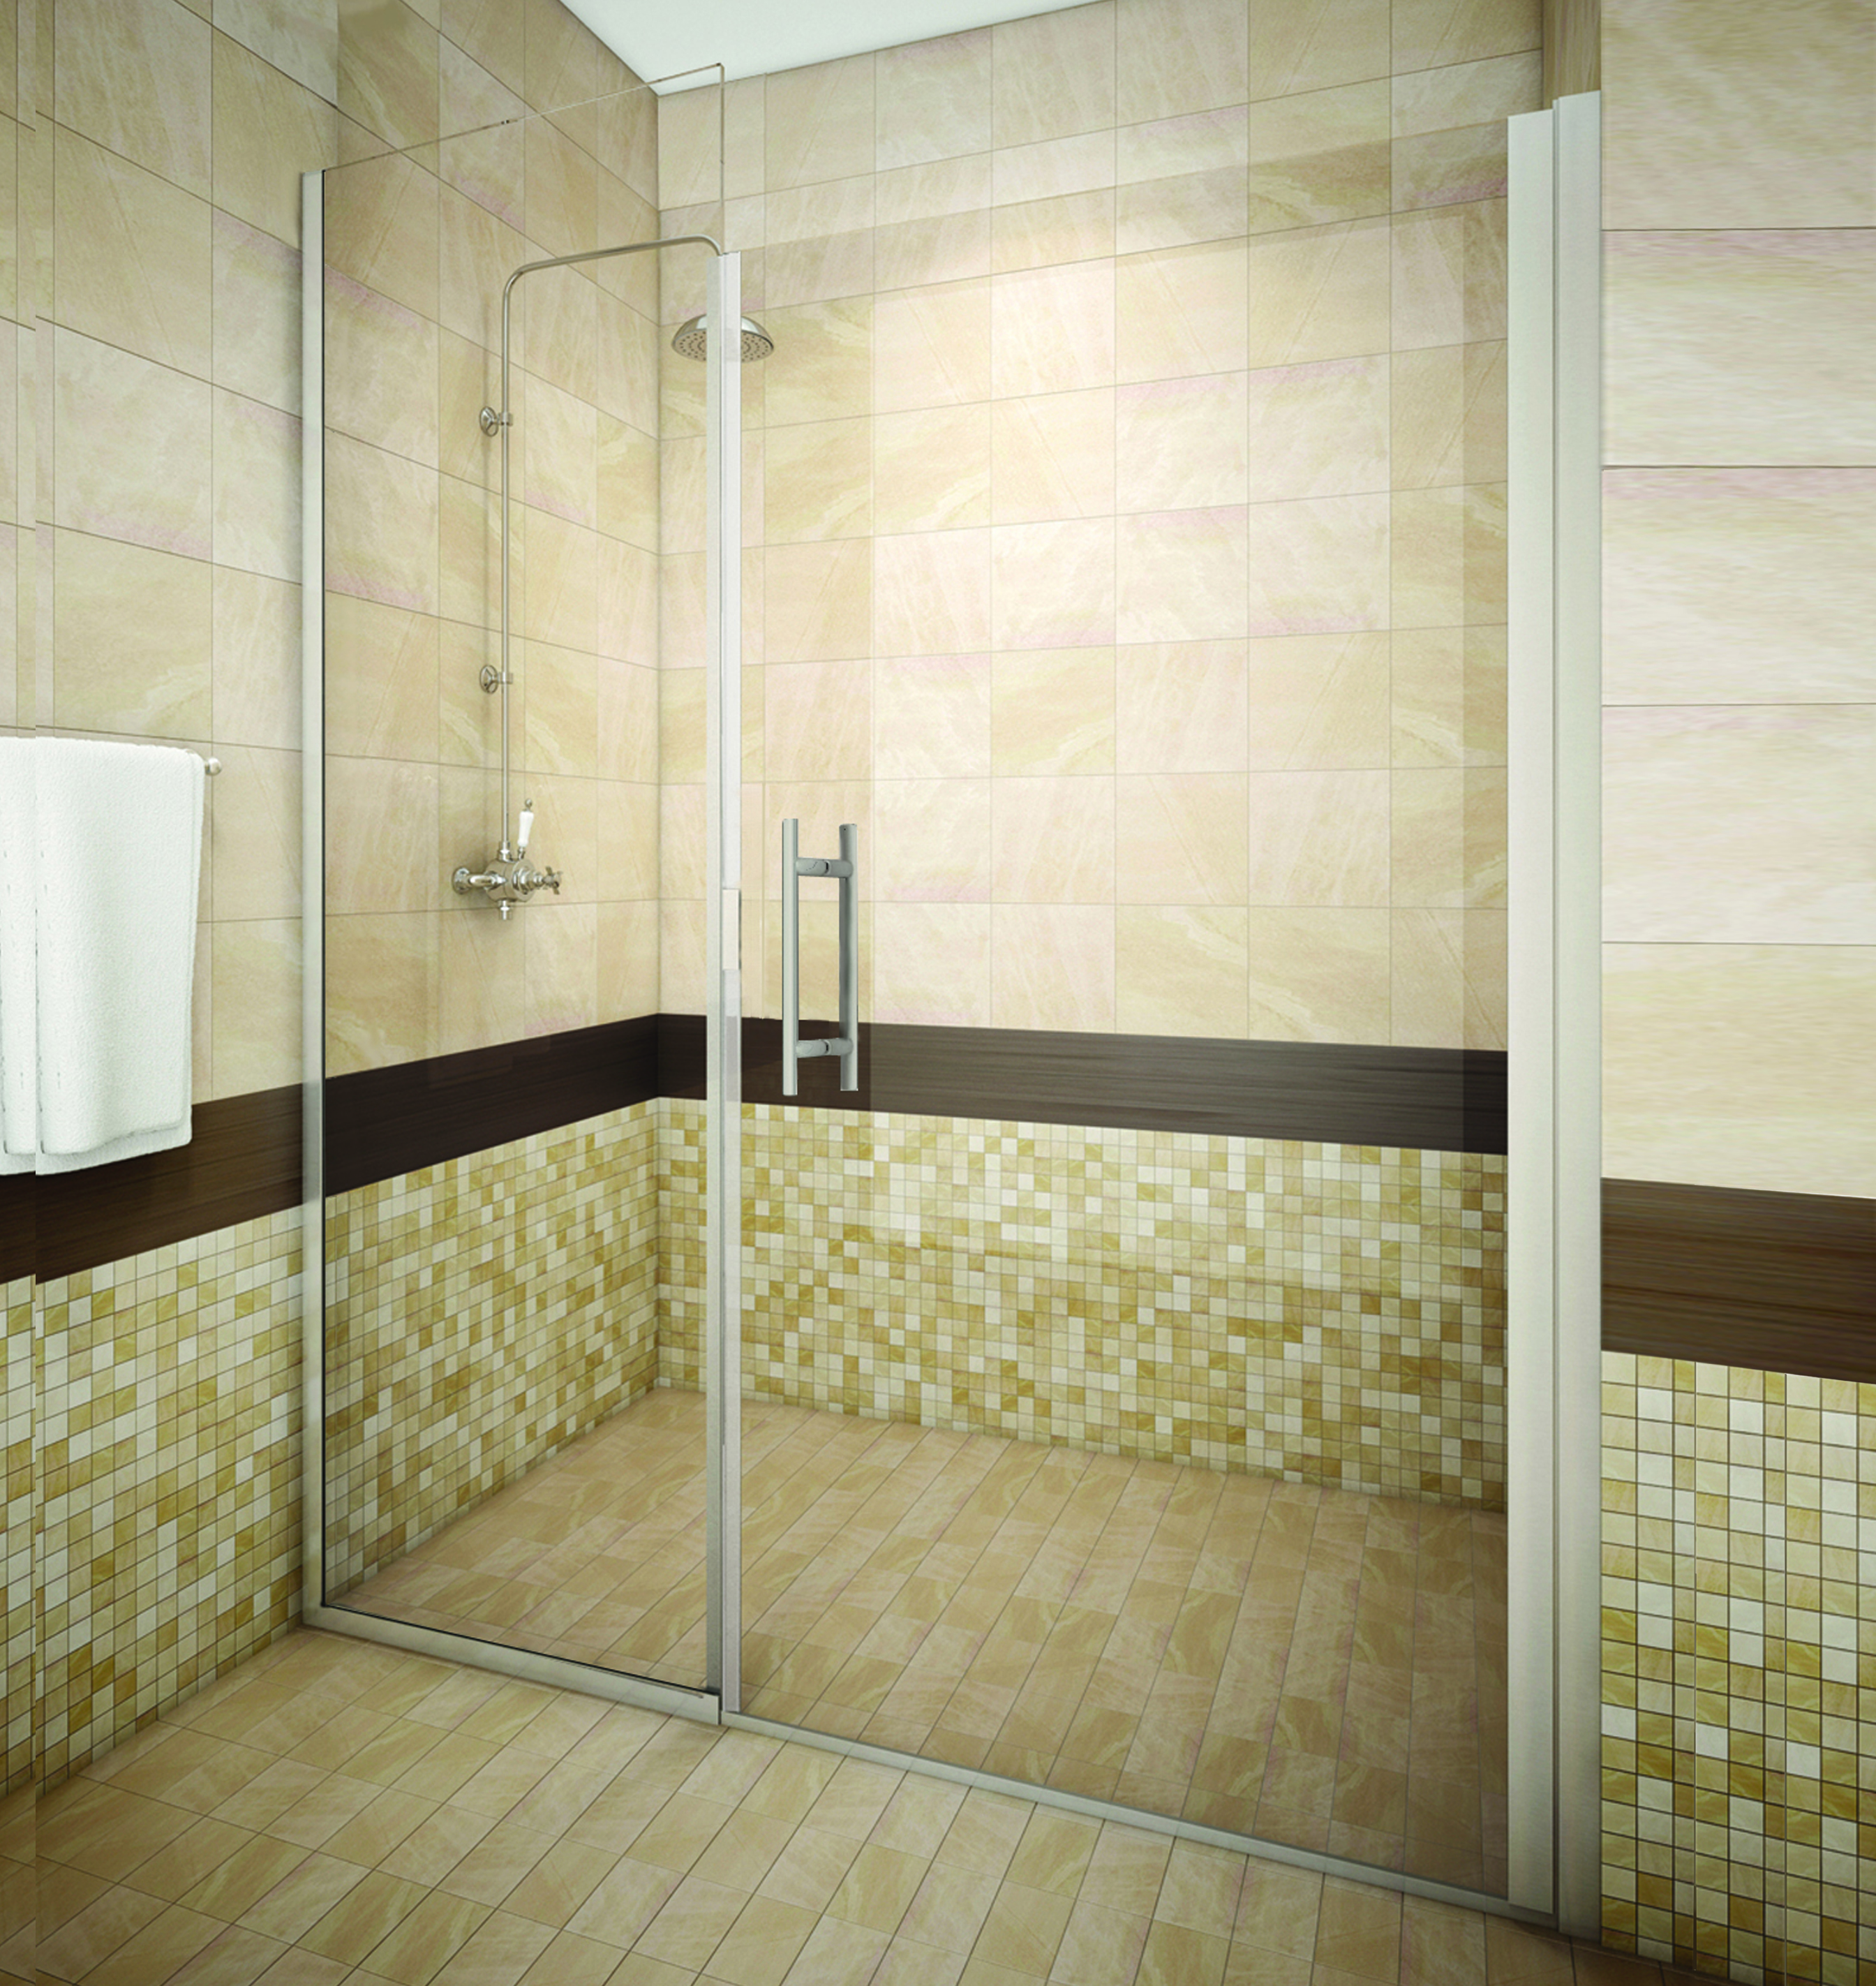 Tucson Semi Frameless Glass Shower Enclosure 0.25 door - 0.375 panel